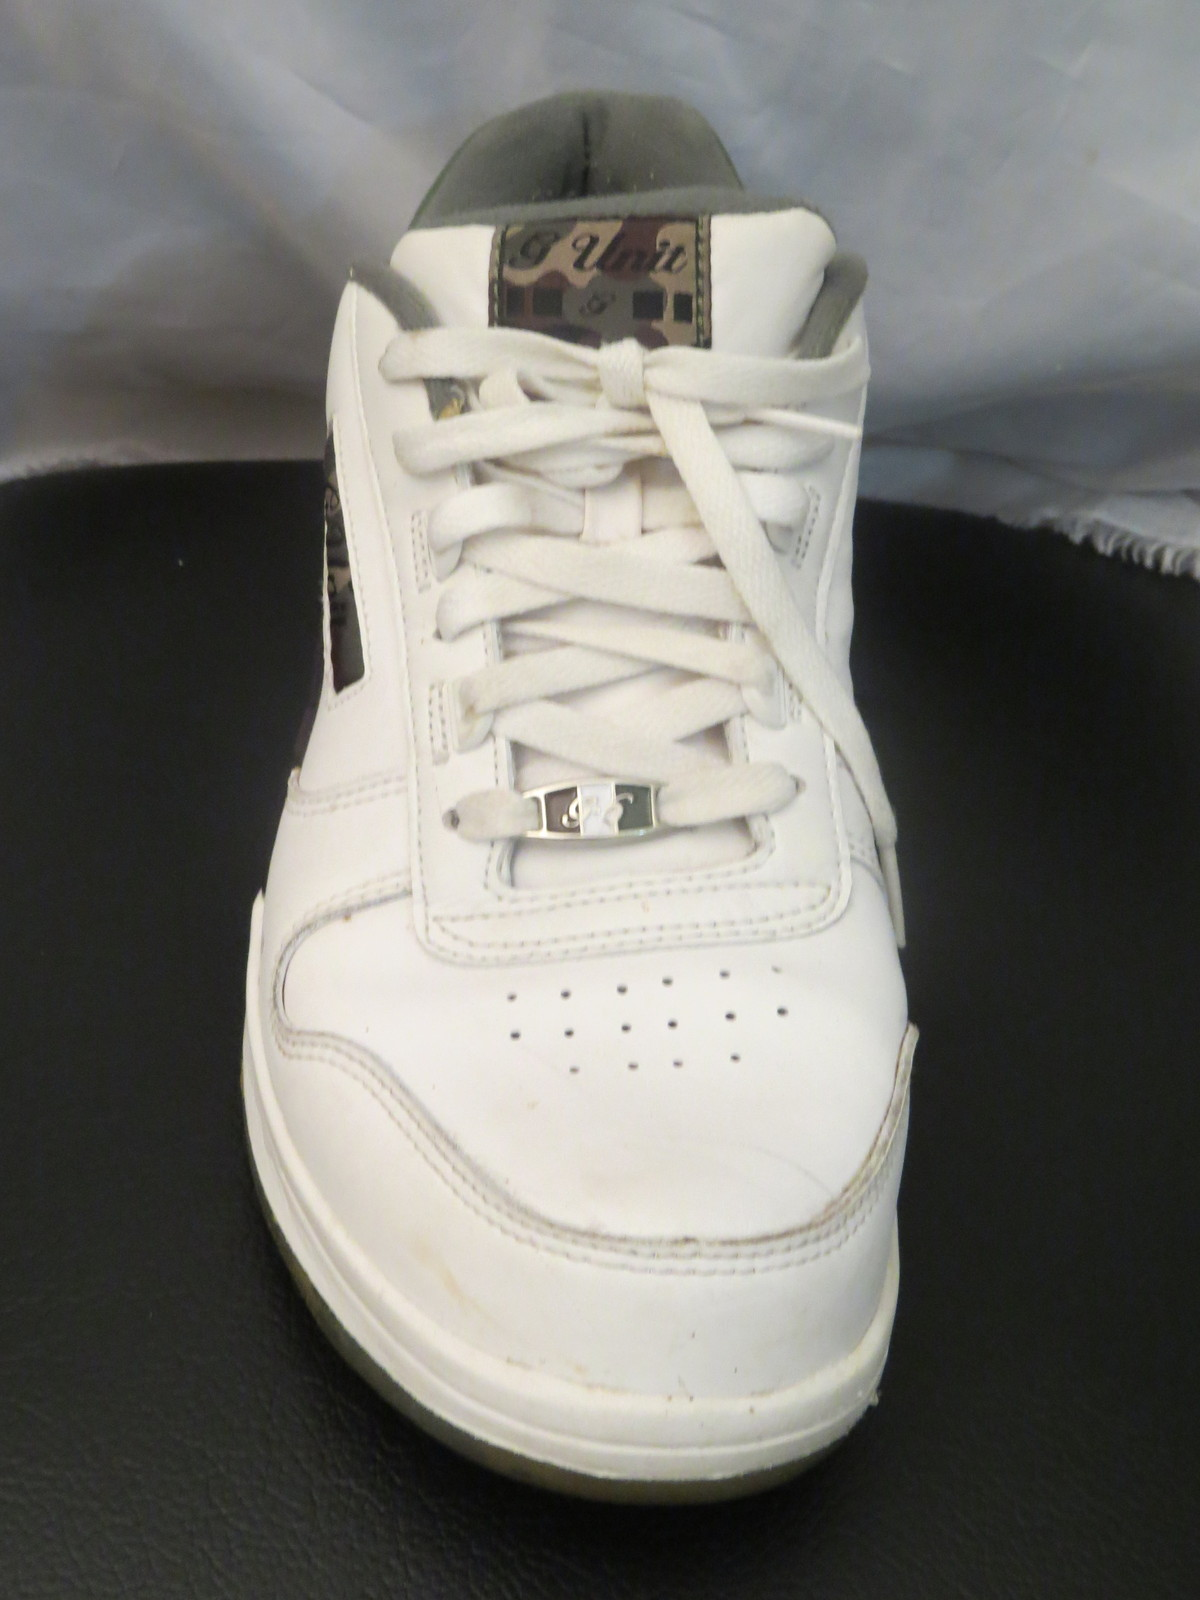 G-Unit G6 Series 2 Sneakers by Reebok - White with Cammo Colorway - Men's 11